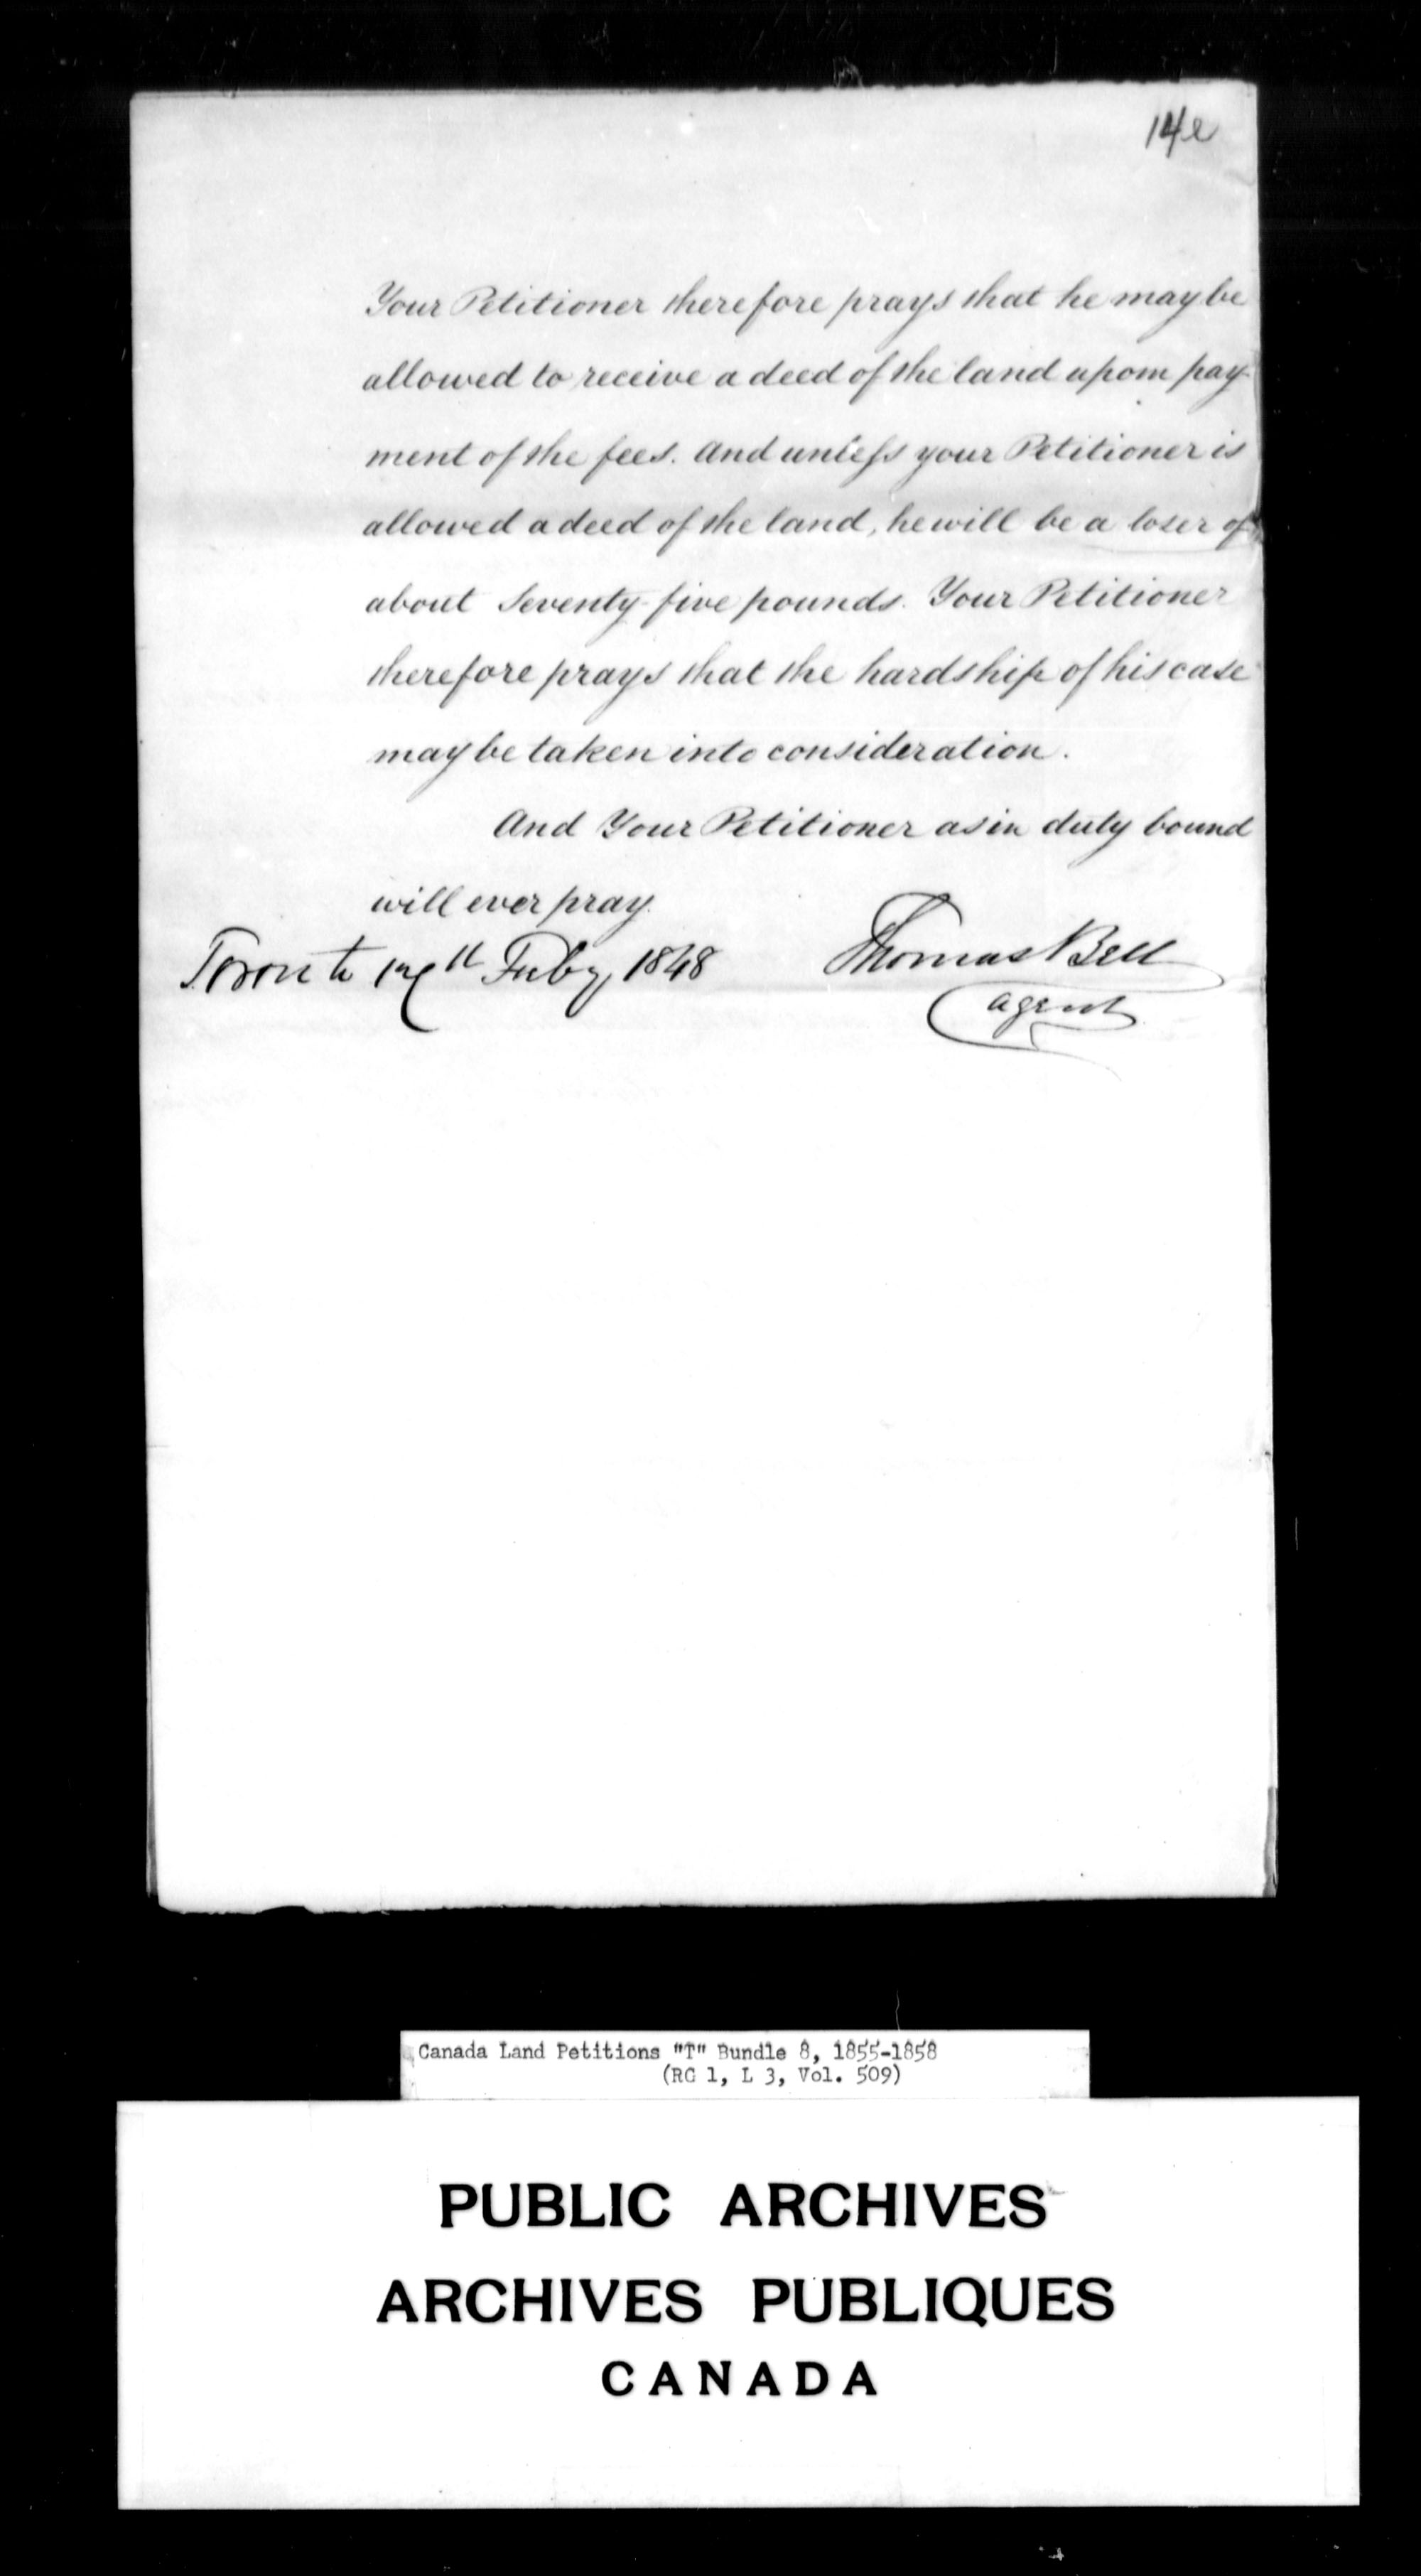 Title: Upper Canada Land Petitions (1763-1865) - Mikan Number: 205131 - Microform: c-2840